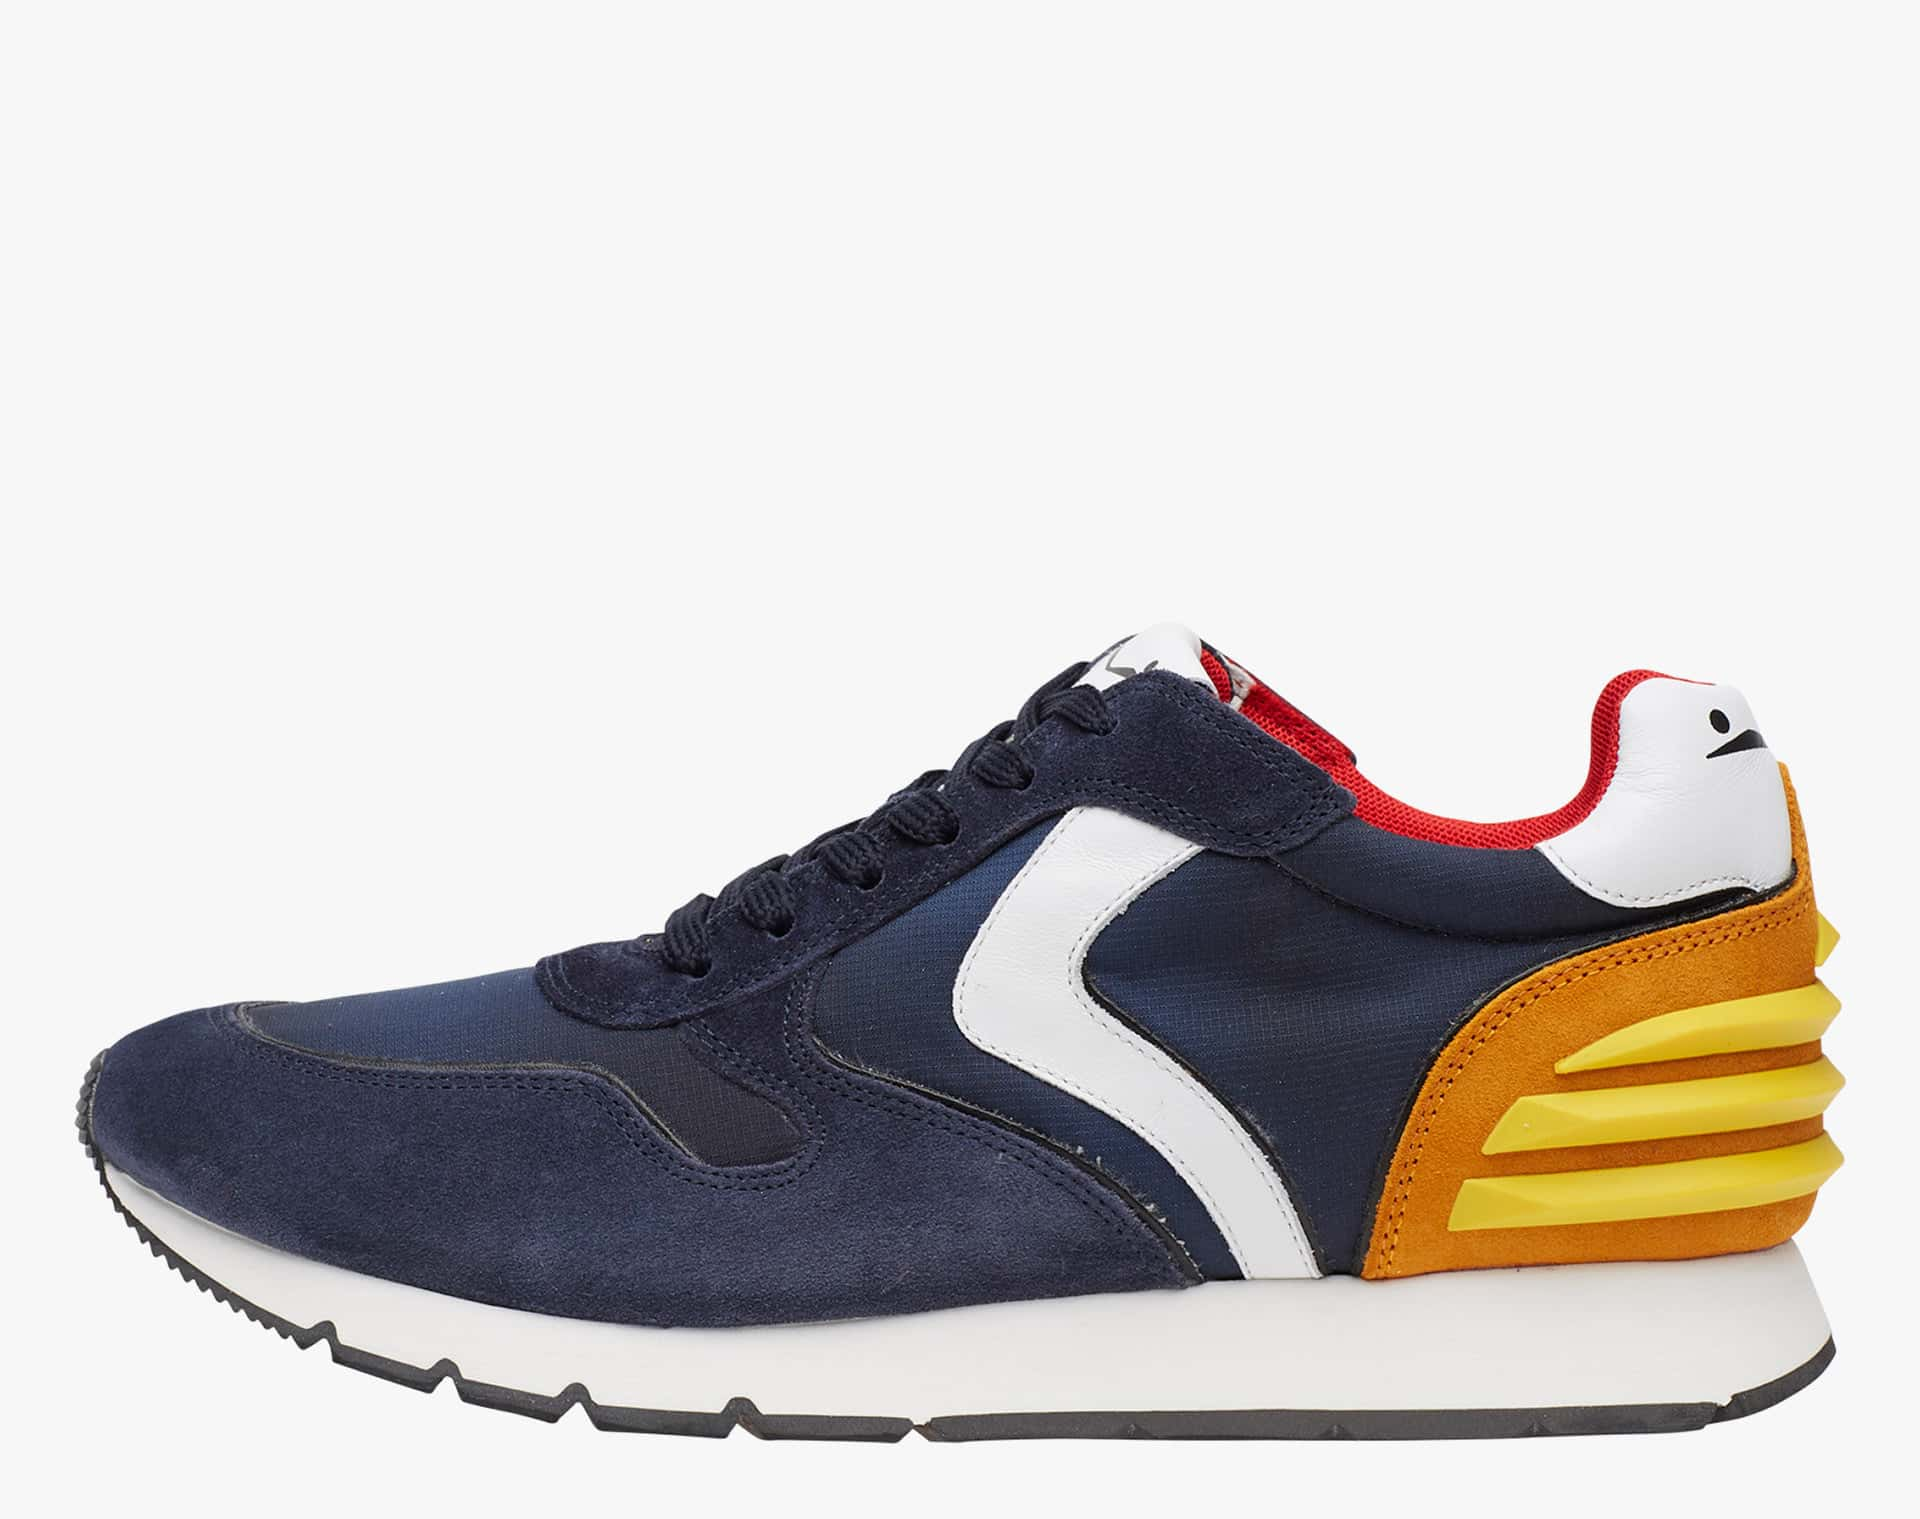 LIAM POWER - Suede and technical fabric sneakers - Blue/Orange